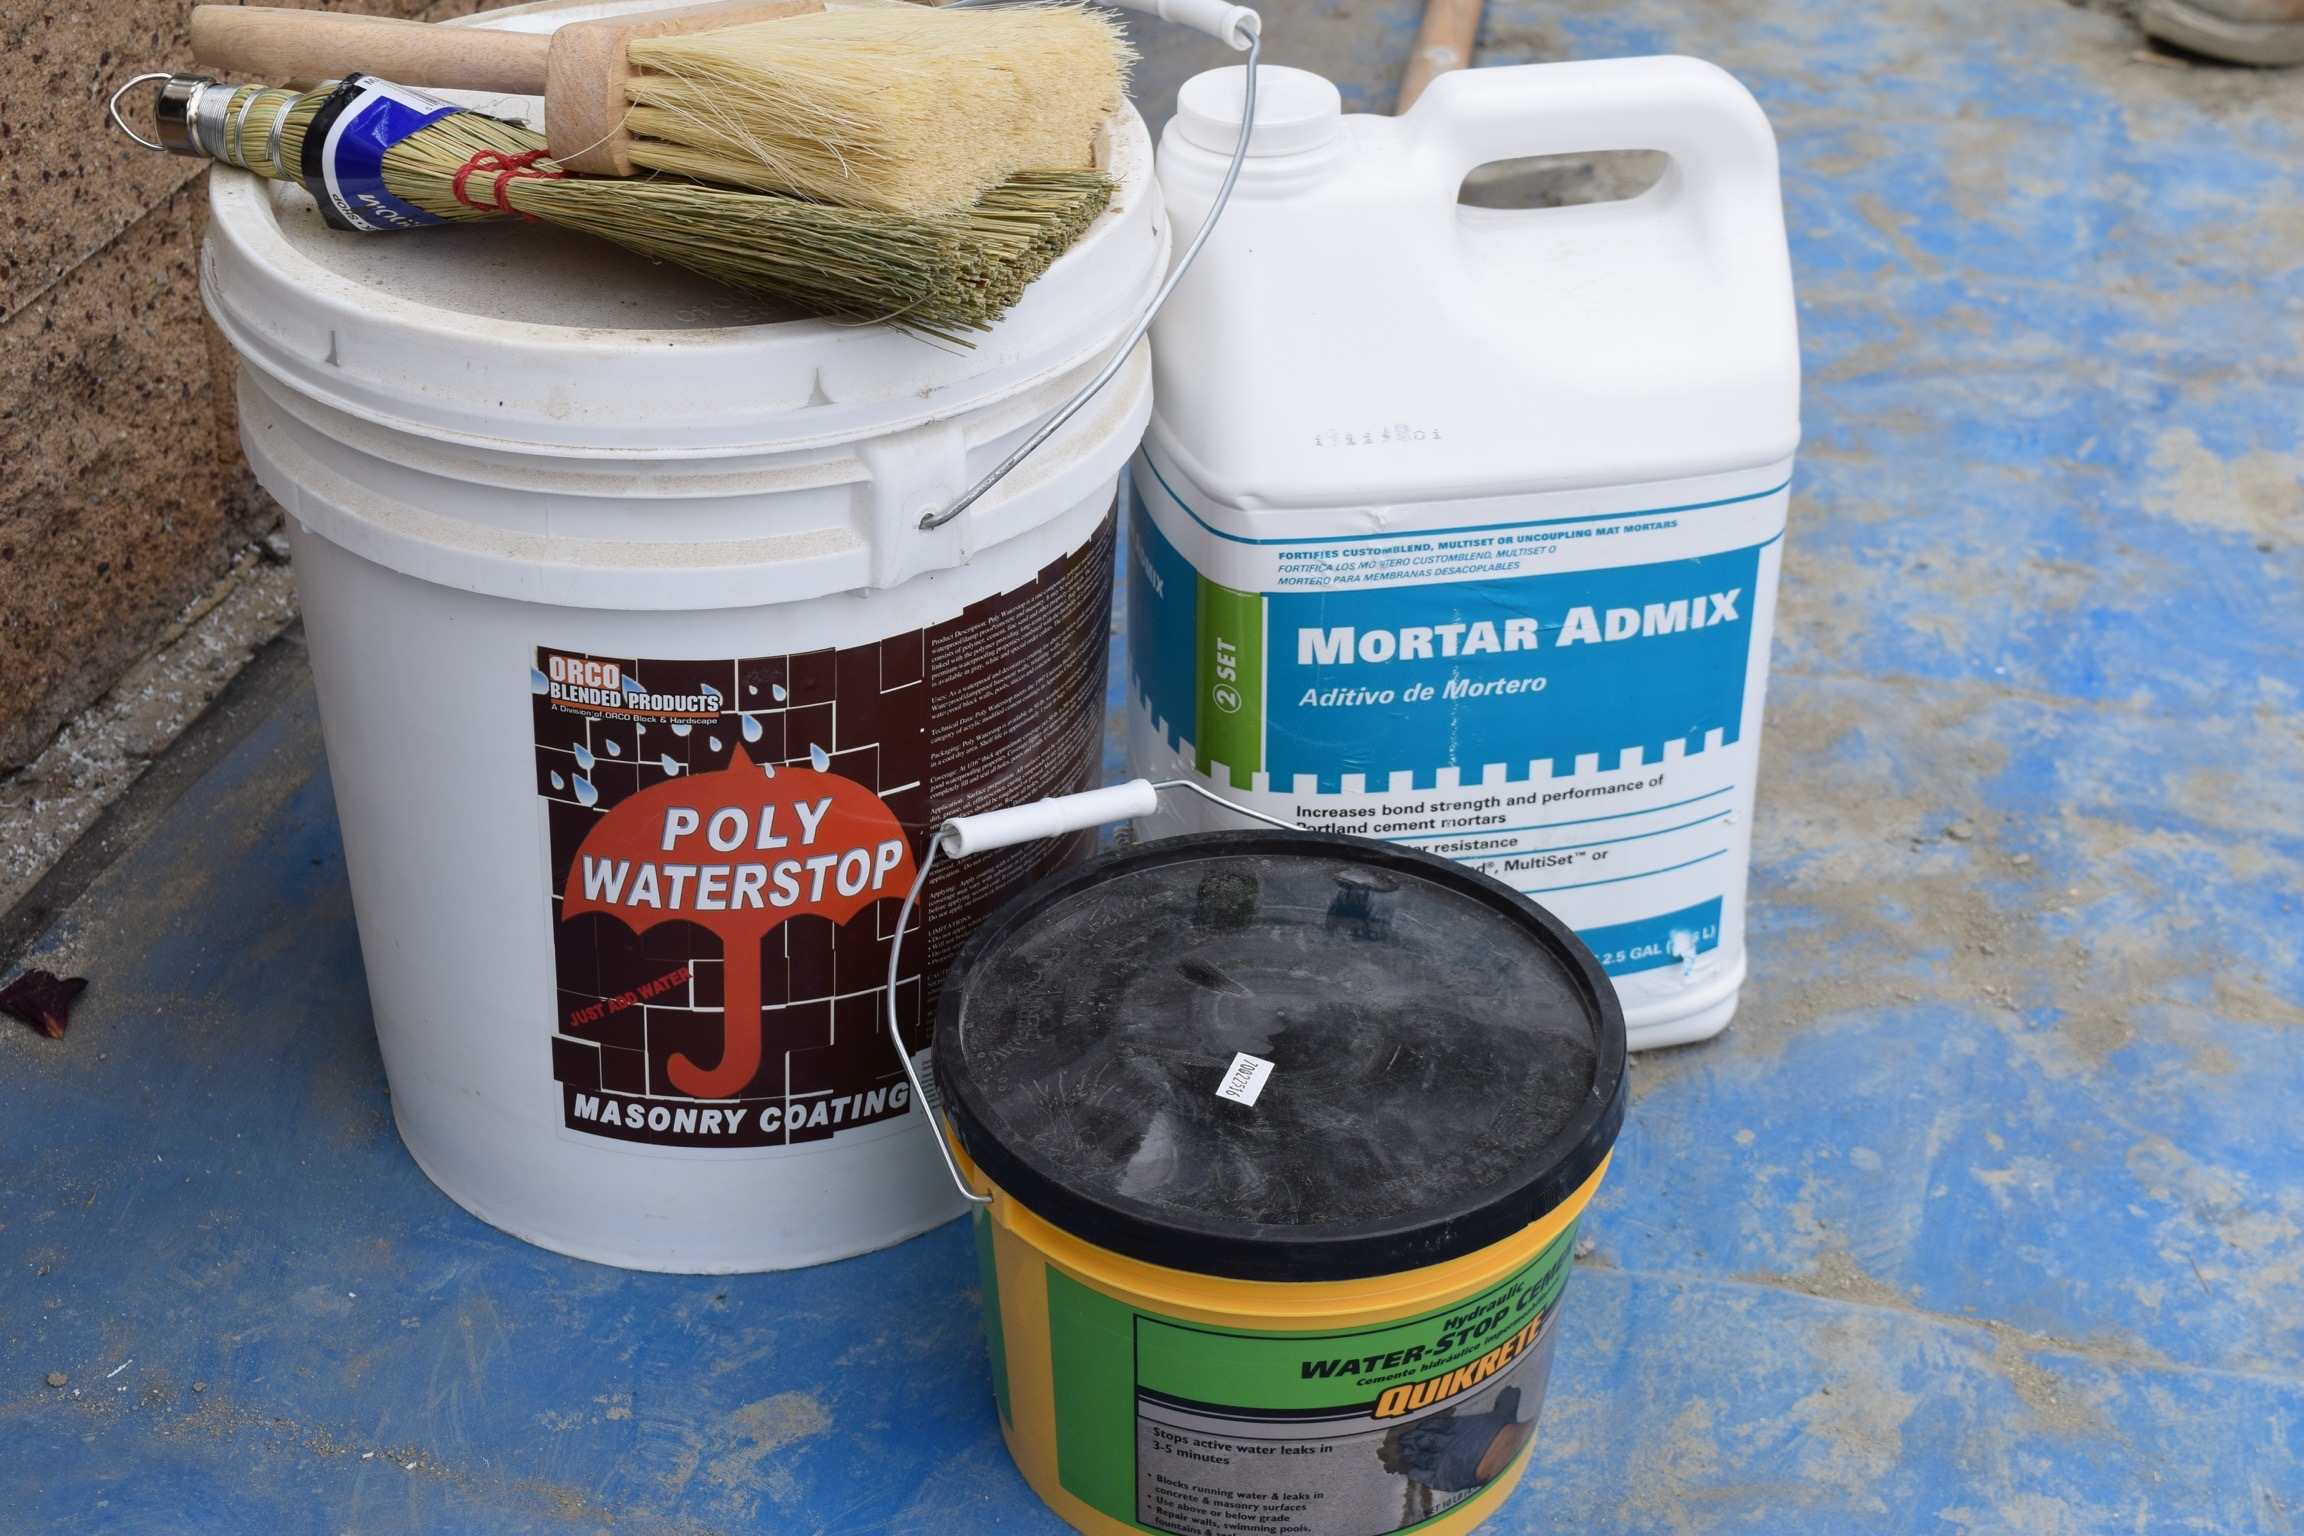 Poly Waterstop waterproofing product